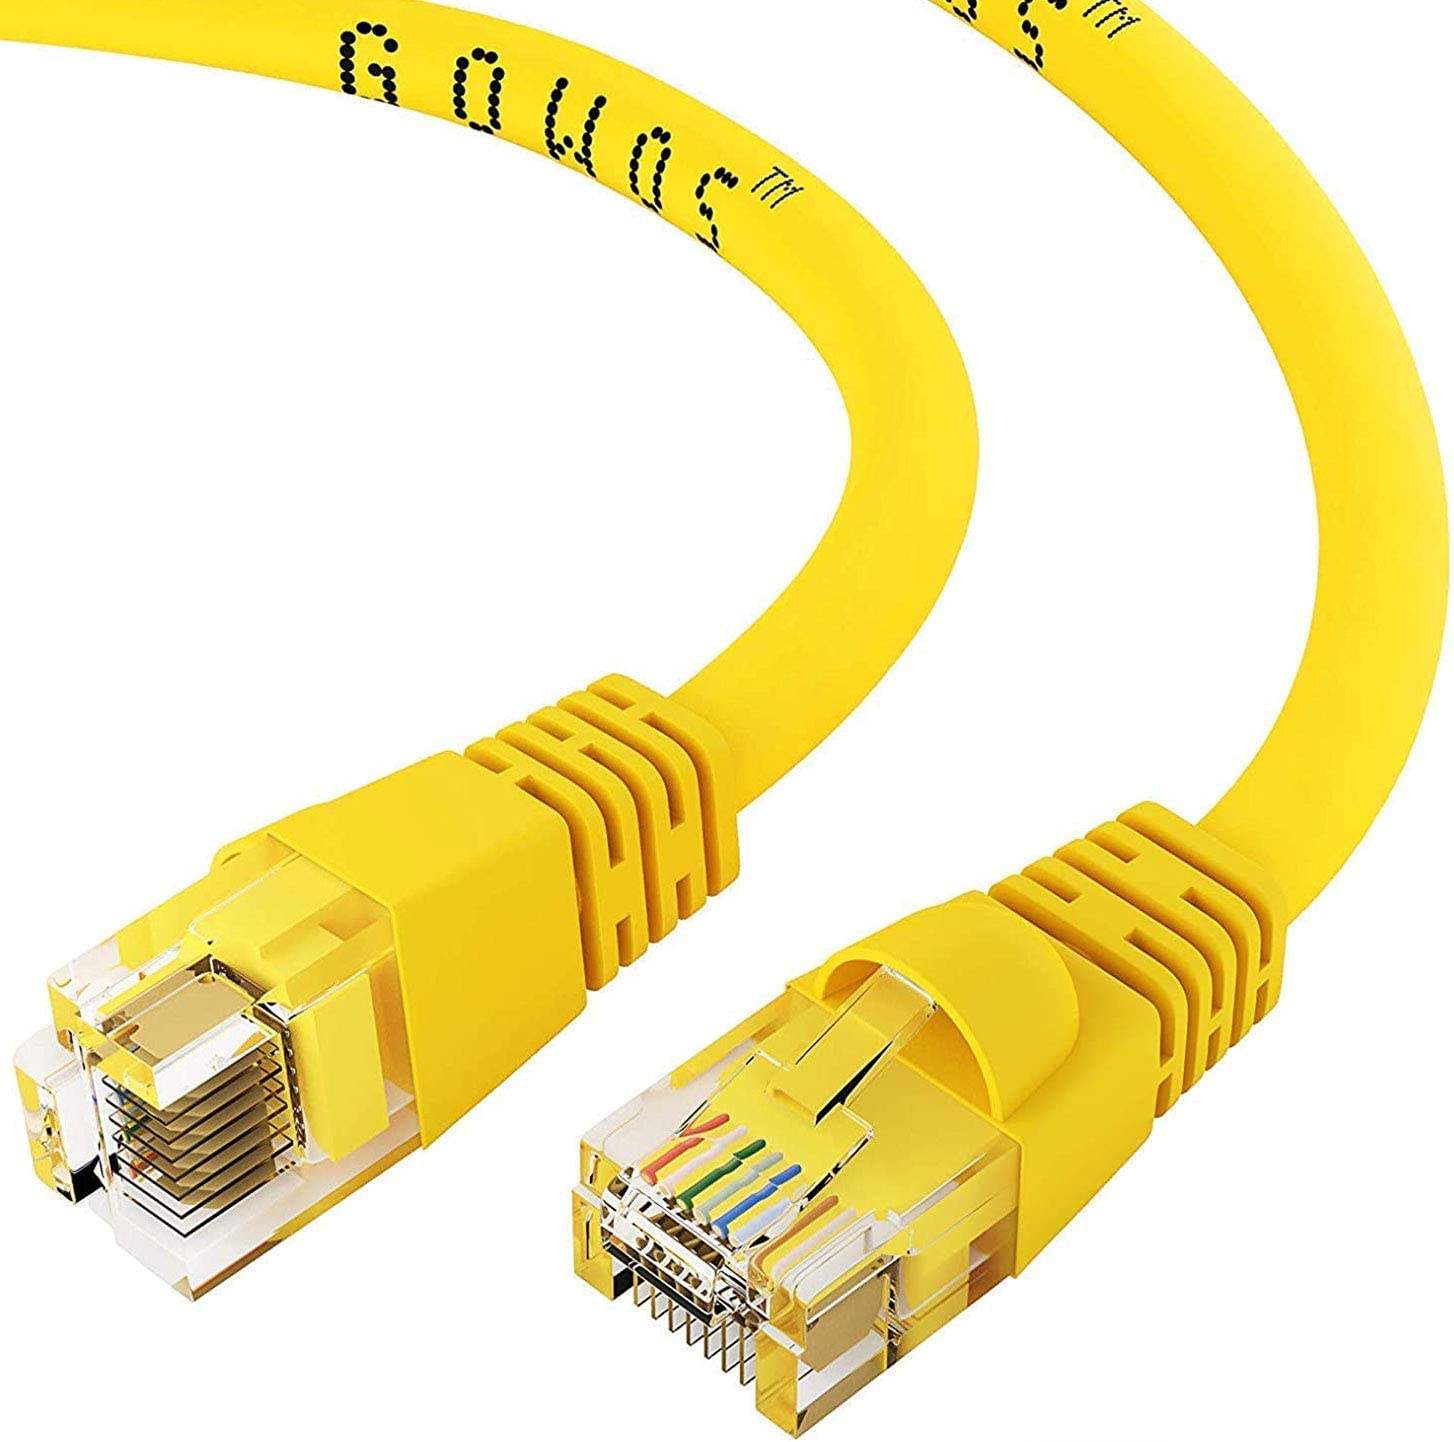 350MHz 1Gigabit//Sec High Speed LAN Internet//Patch Cable 24AWG Network Cable with Gold Plated RJ45 Non-Booted Connector Yellow 20-Pack - 12 Feet GOWOS Cat5e Ethernet Cable